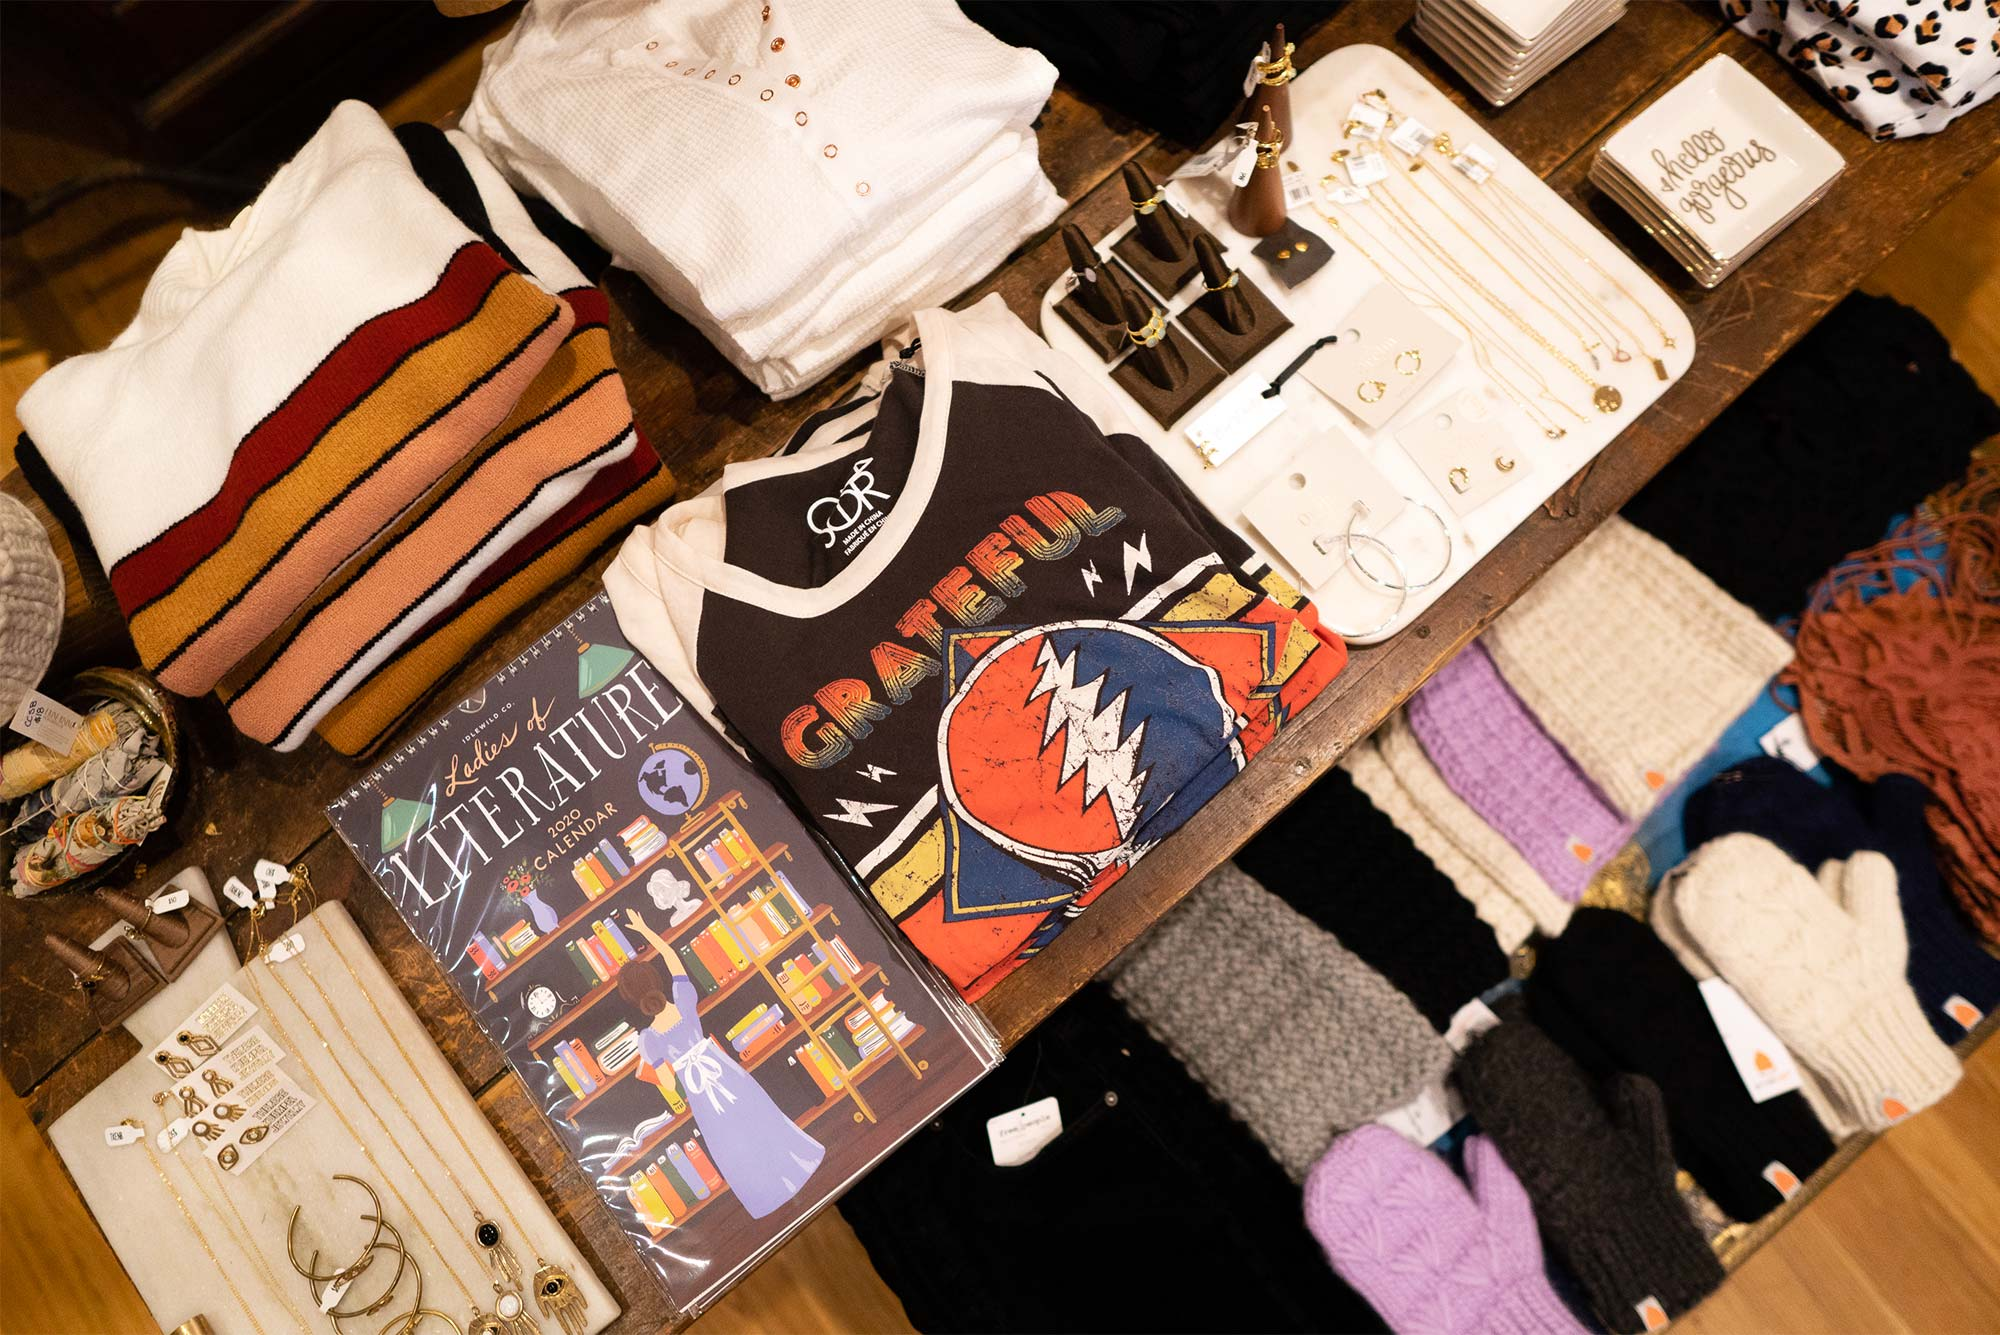 Products, including jewelry and shirts, are displayed on a table in the store Flock located in Boston's South End neighborhood.